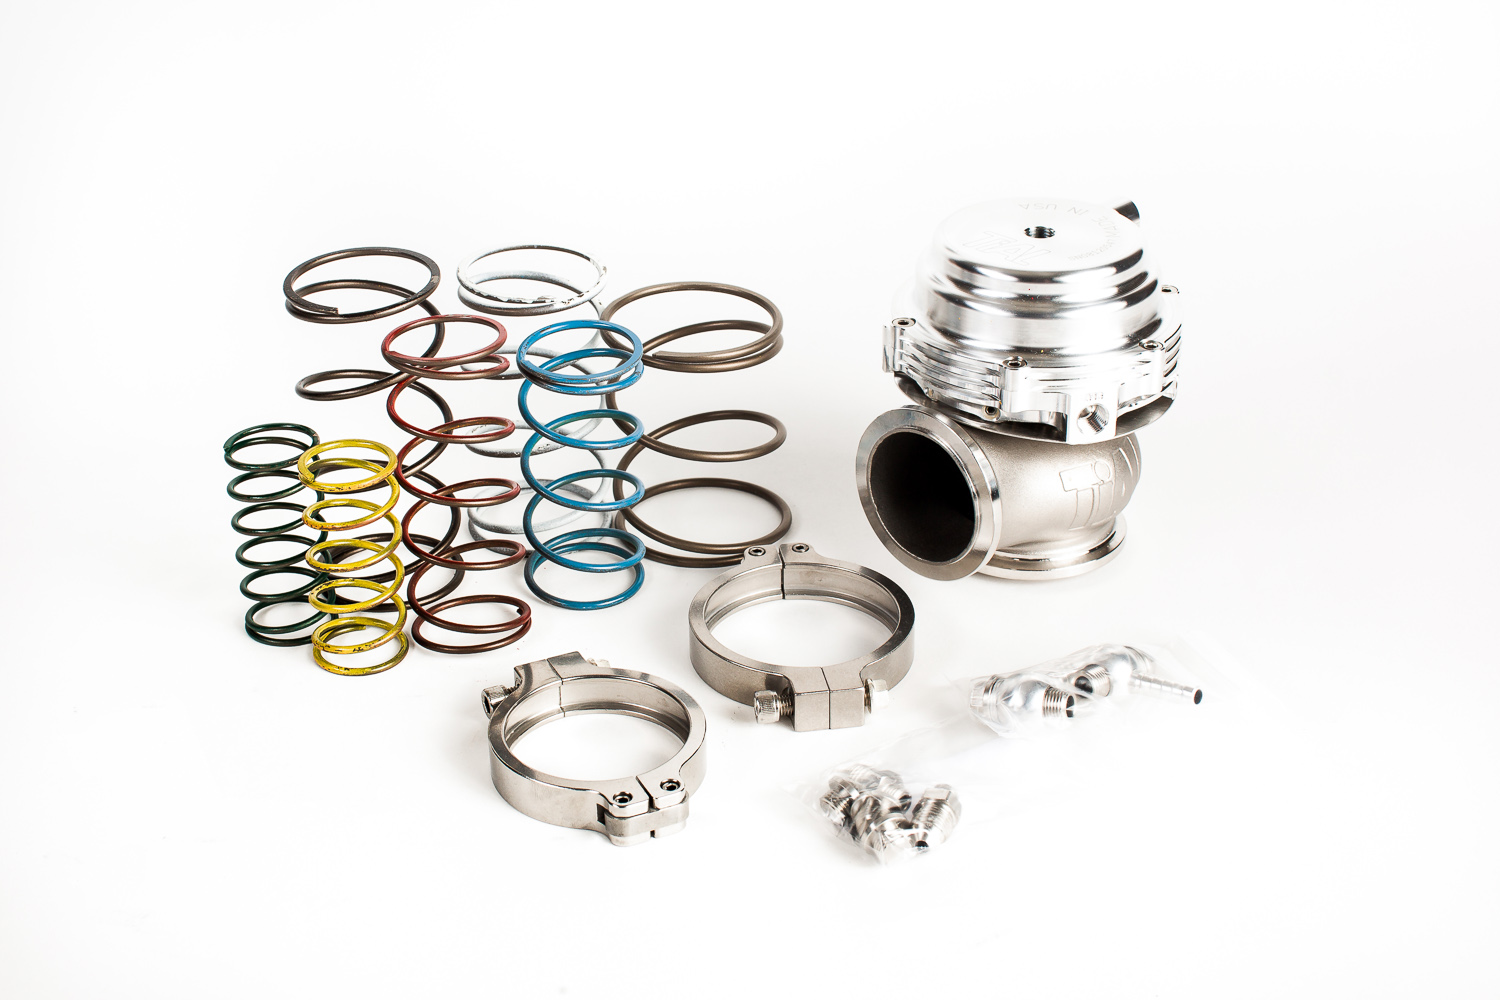 p&l rotated turbo kit gt30r gtx30r tial 44mm